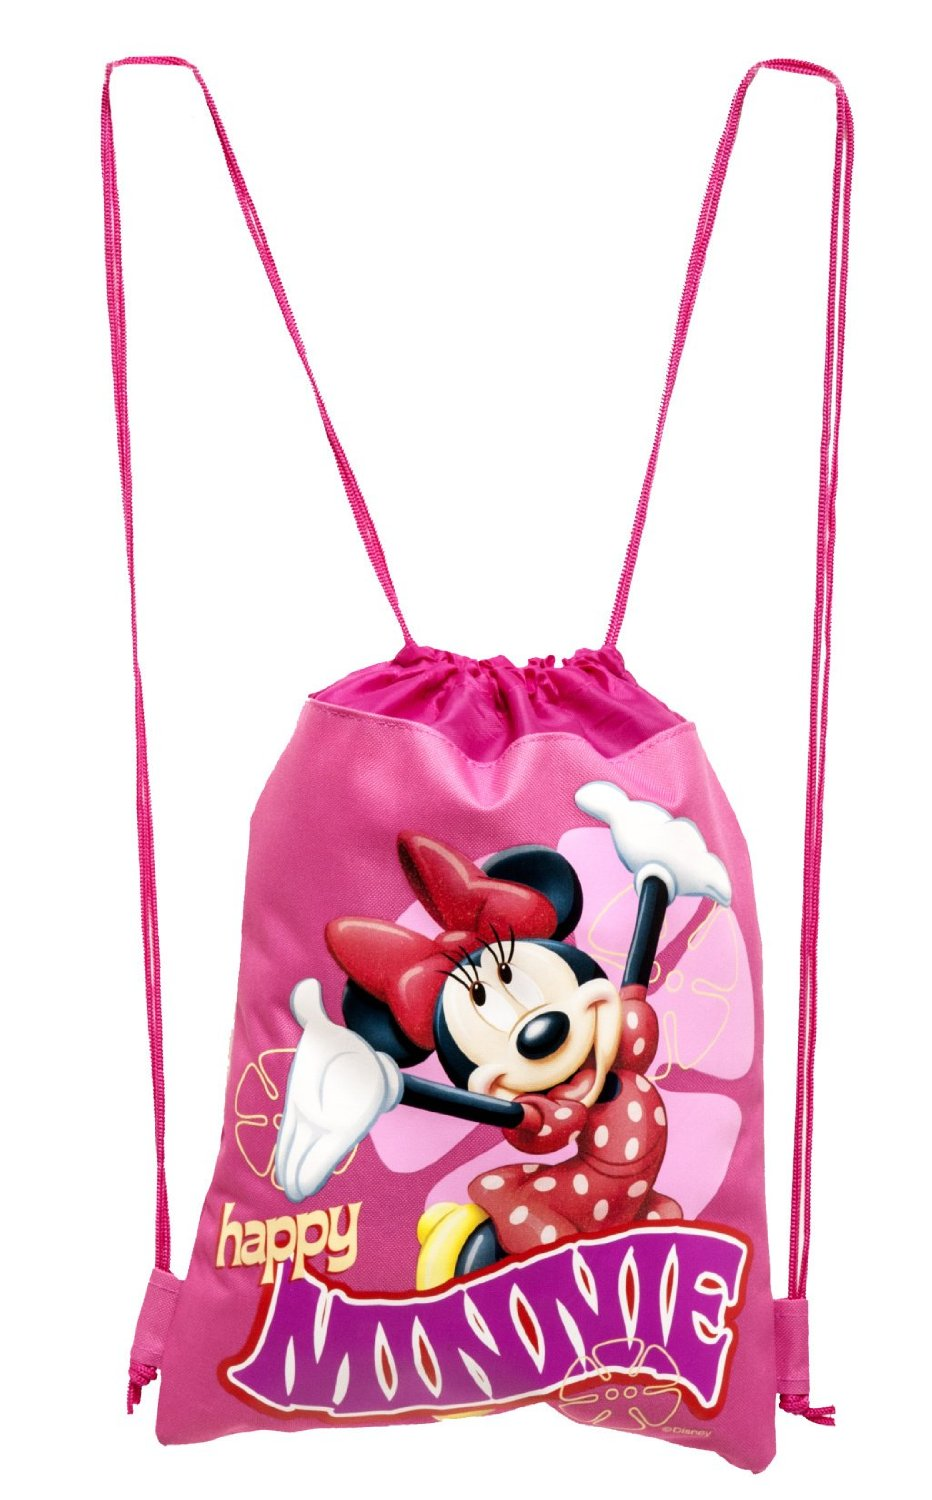 Disney Minnie Mouse Hot Pink Drawstring Backpack